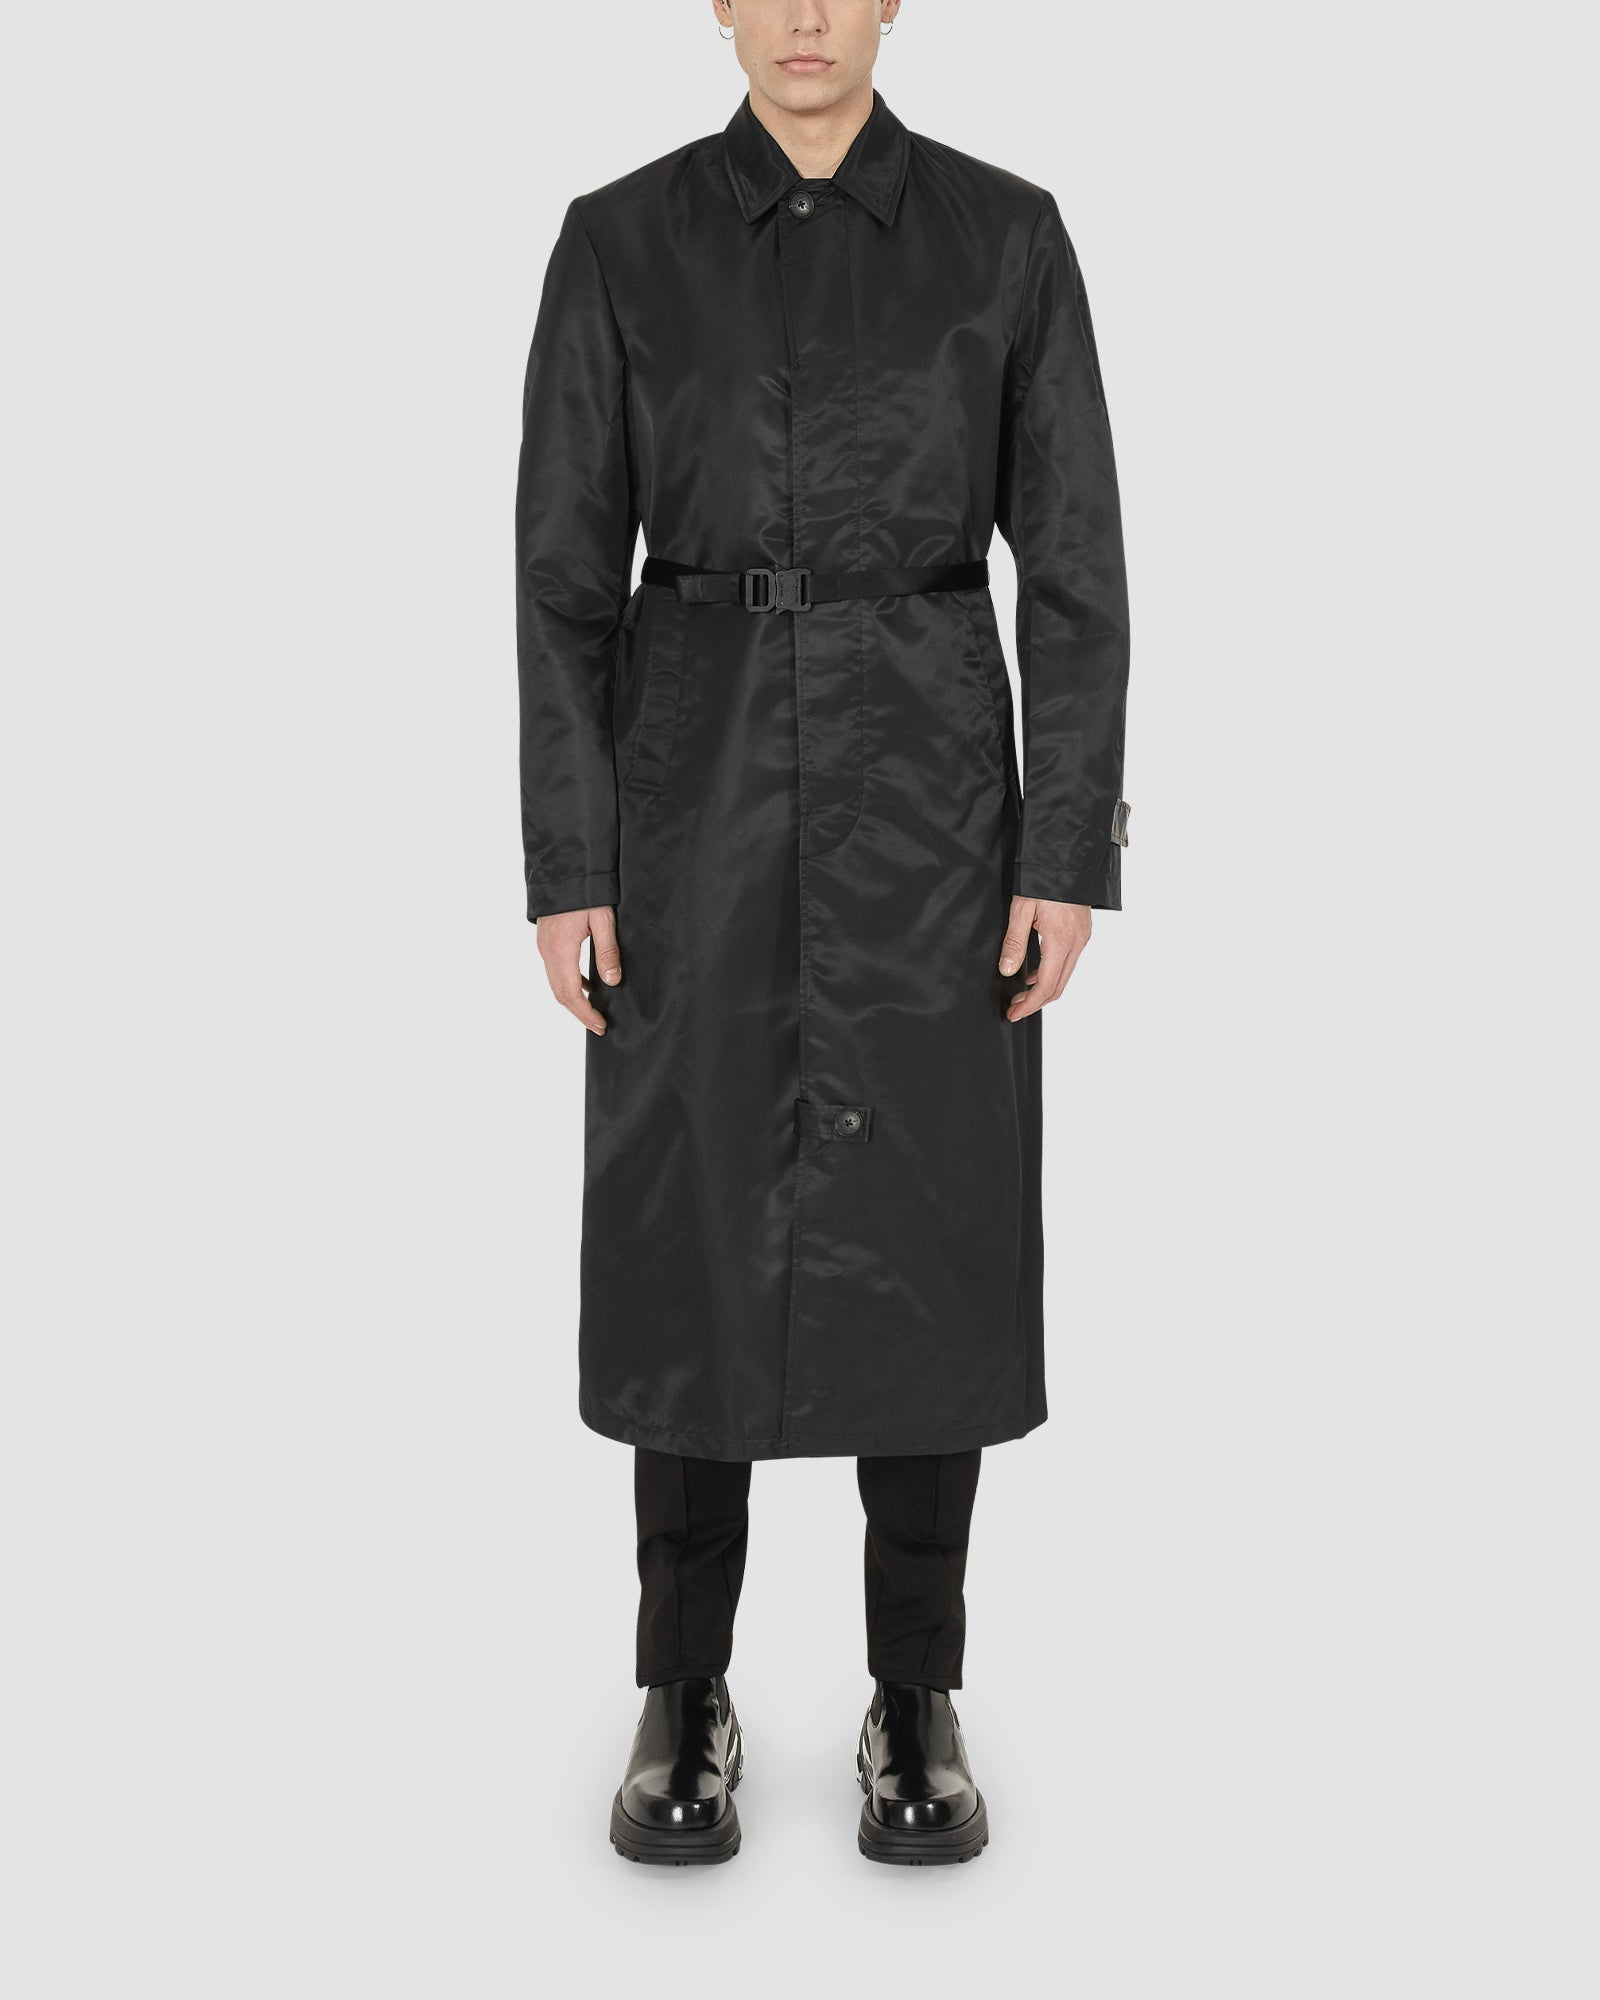 1017 ALYX 9SM | BLACK TRENCH COAT | Outerwear | BLACK, Google Shopping, Man, MEN, Outerwear, S20, S20EXSH